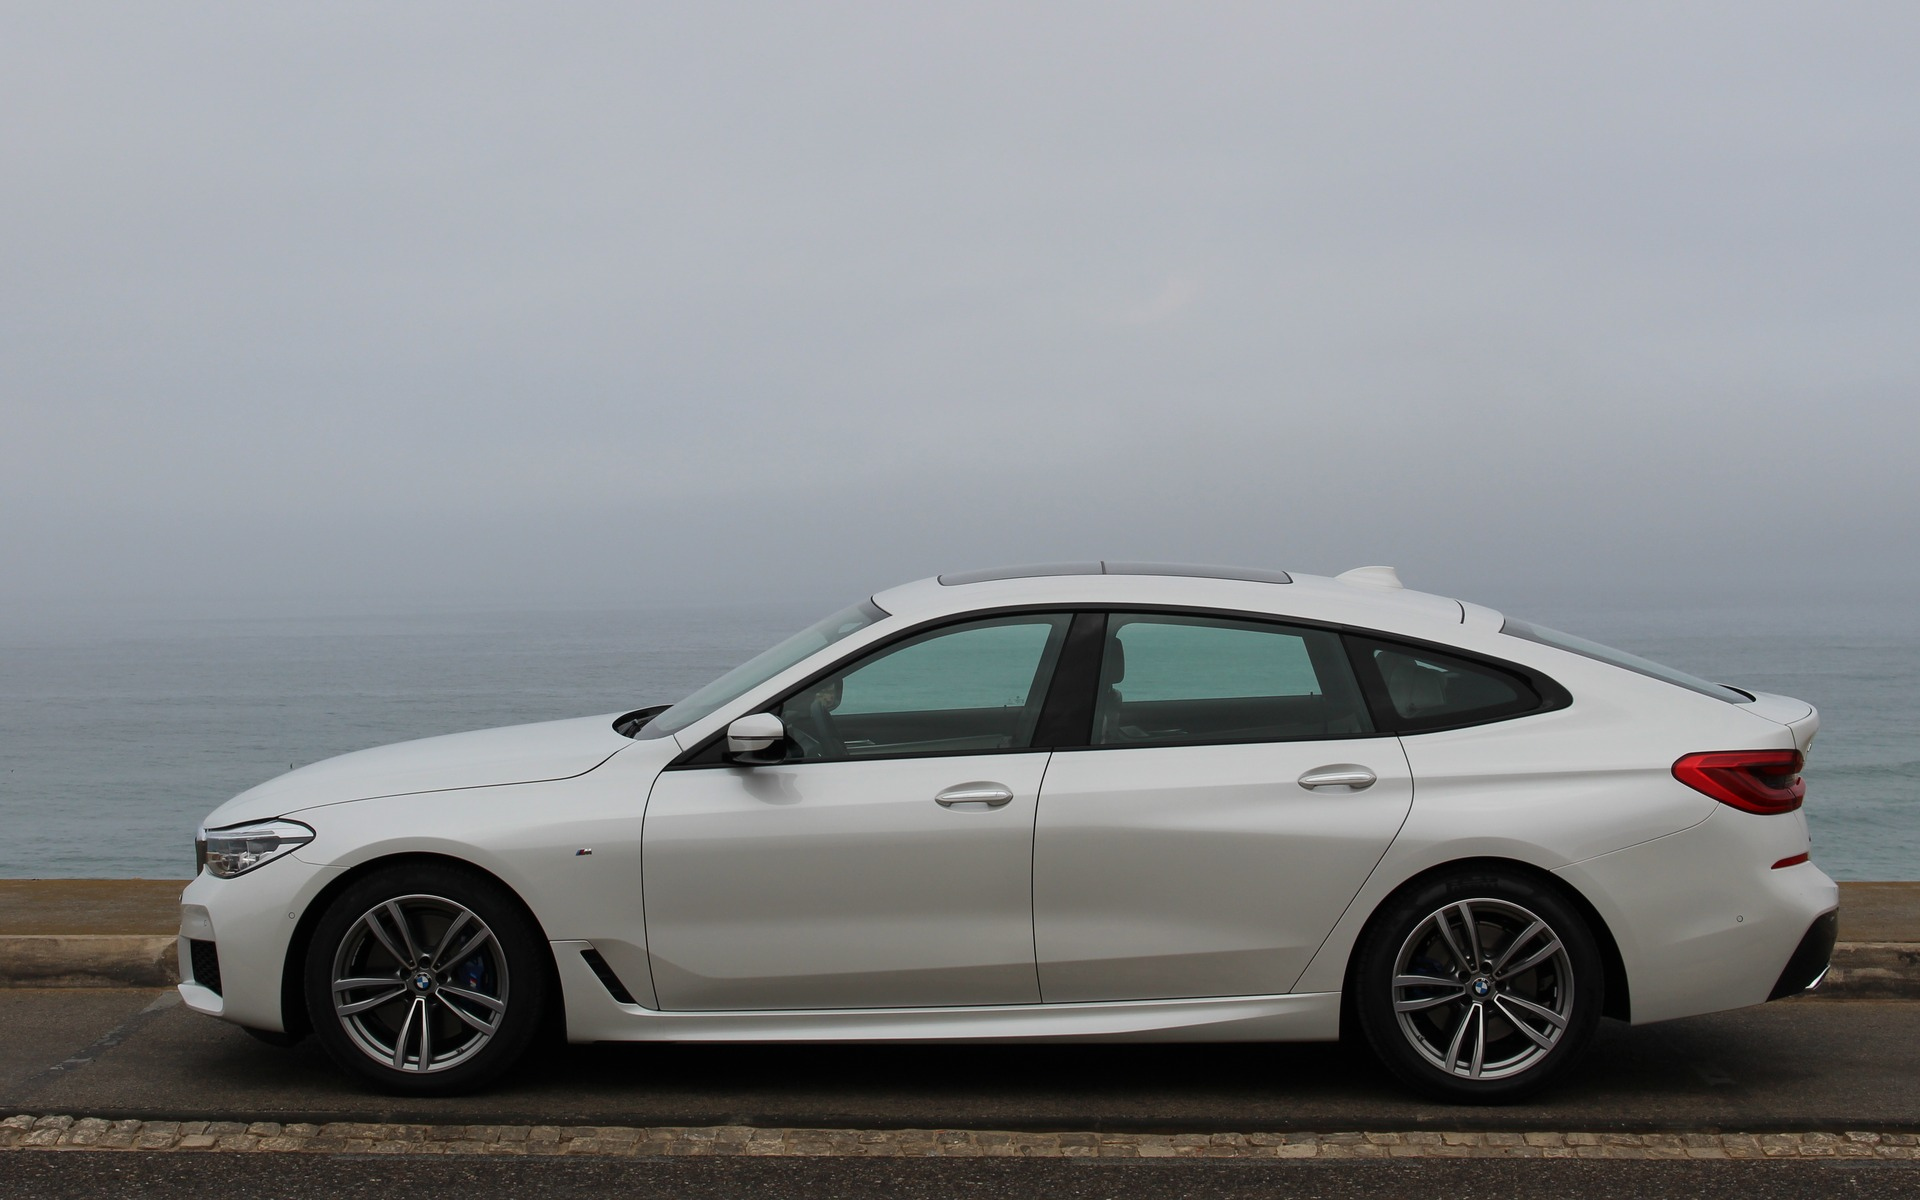 Bmw 6 Series Reviews >> 2018 BMW 640i xDrive Gran Turismo: The New Face of the 6 Series - 6/31